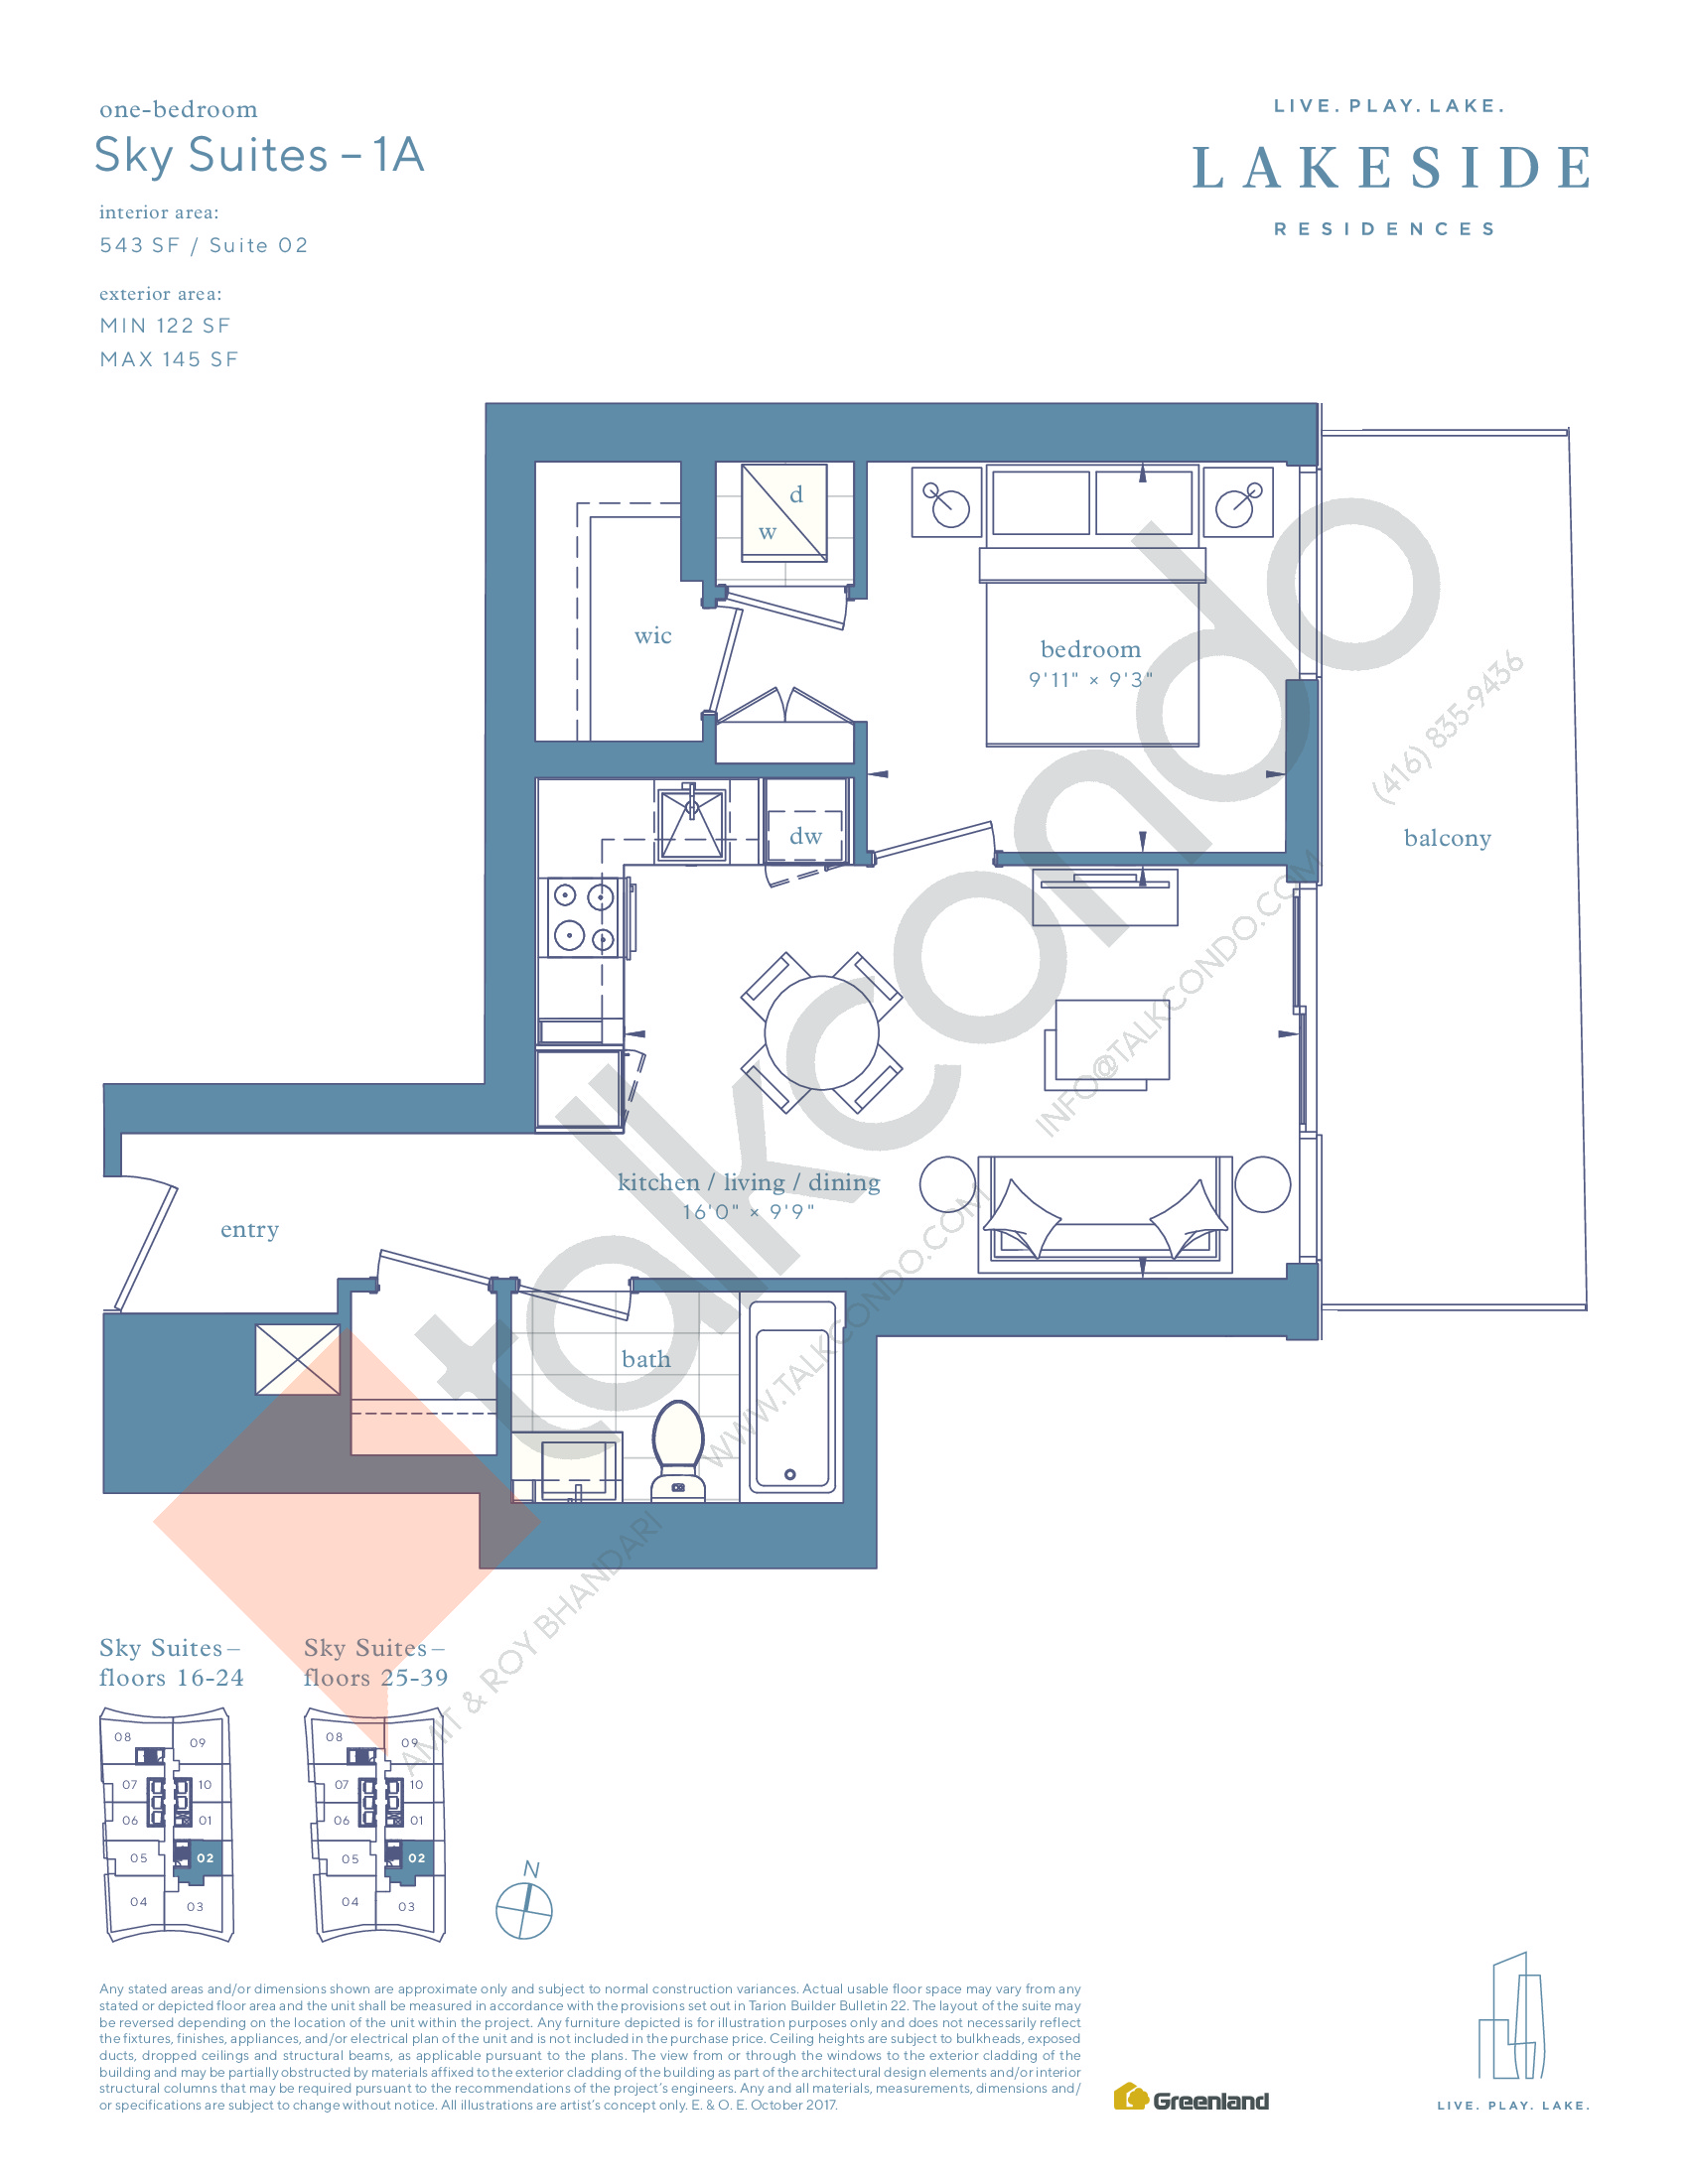 Sky Suites - 1A Floor Plan at Lakeside Residences - 543 sq.ft